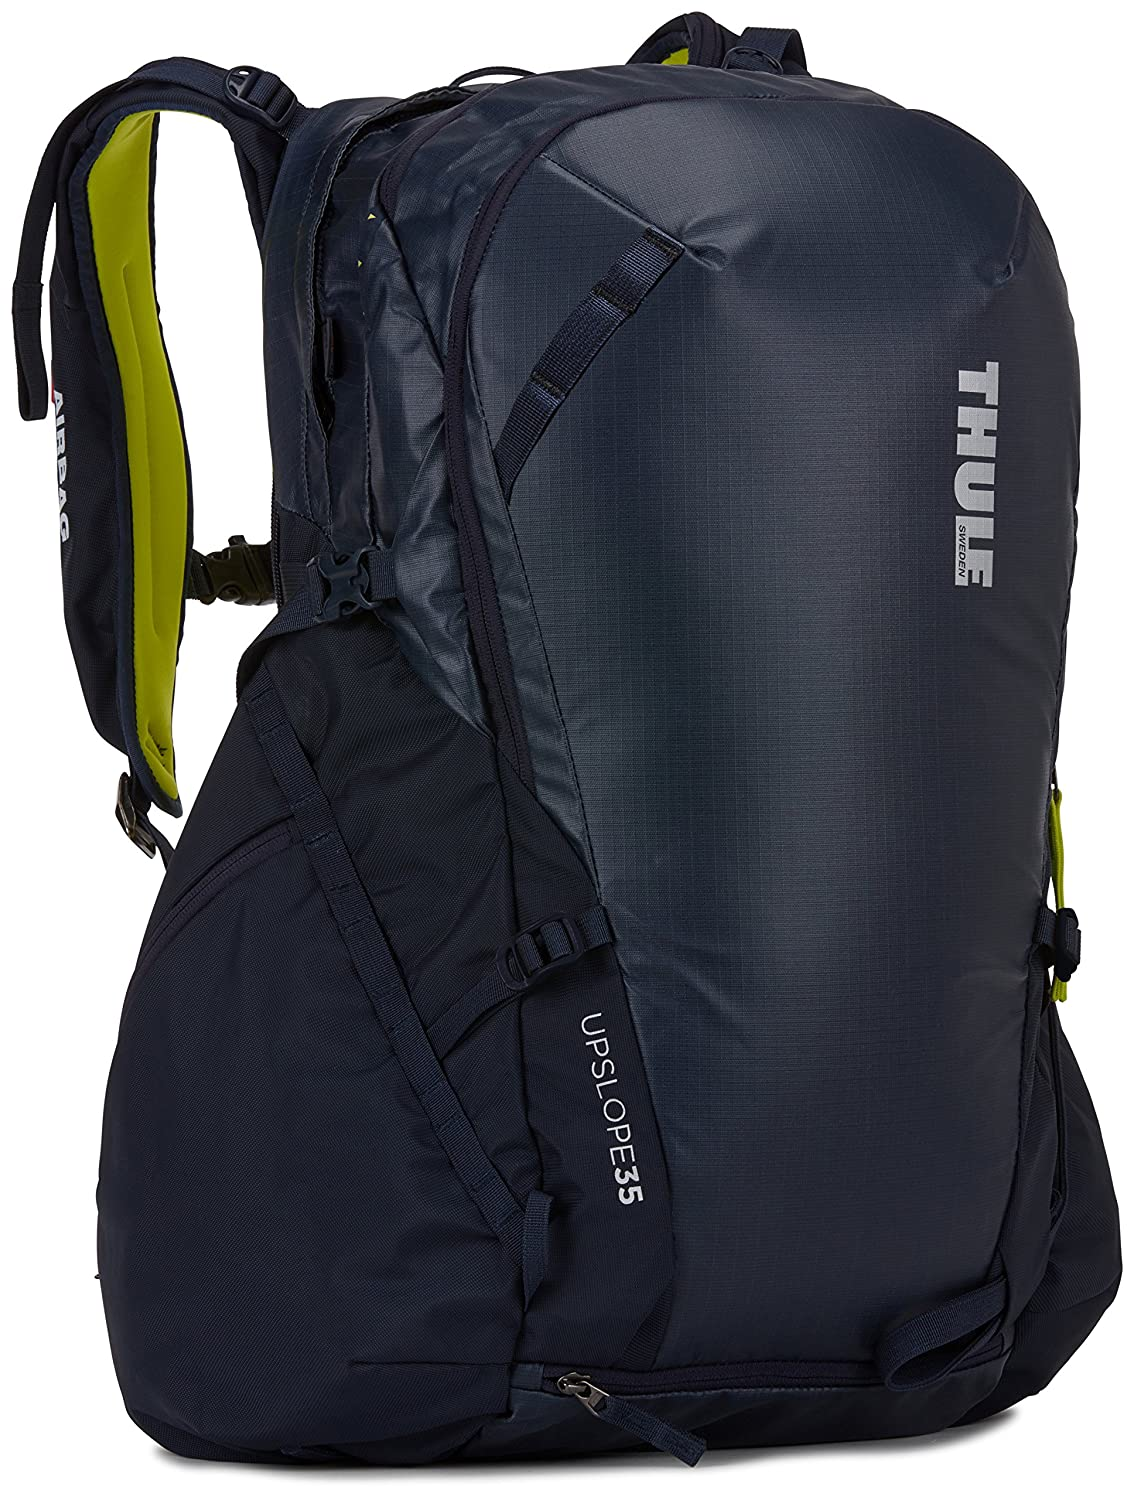 Thule Upslope Snowsports Backpack Removable Airbag 3.0 Ready